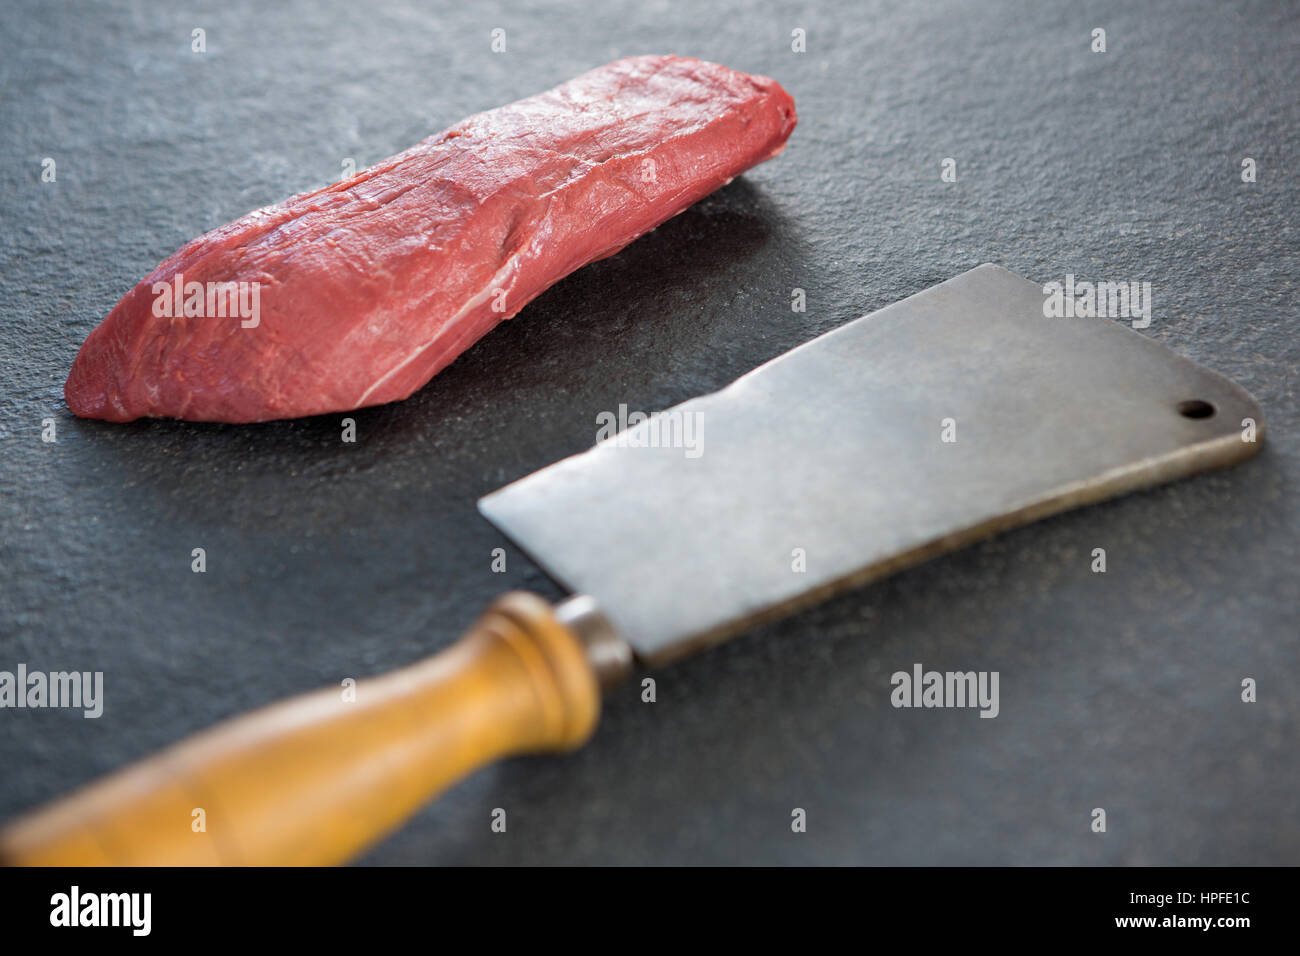 Beef steak and cleaver against black background - Stock Image